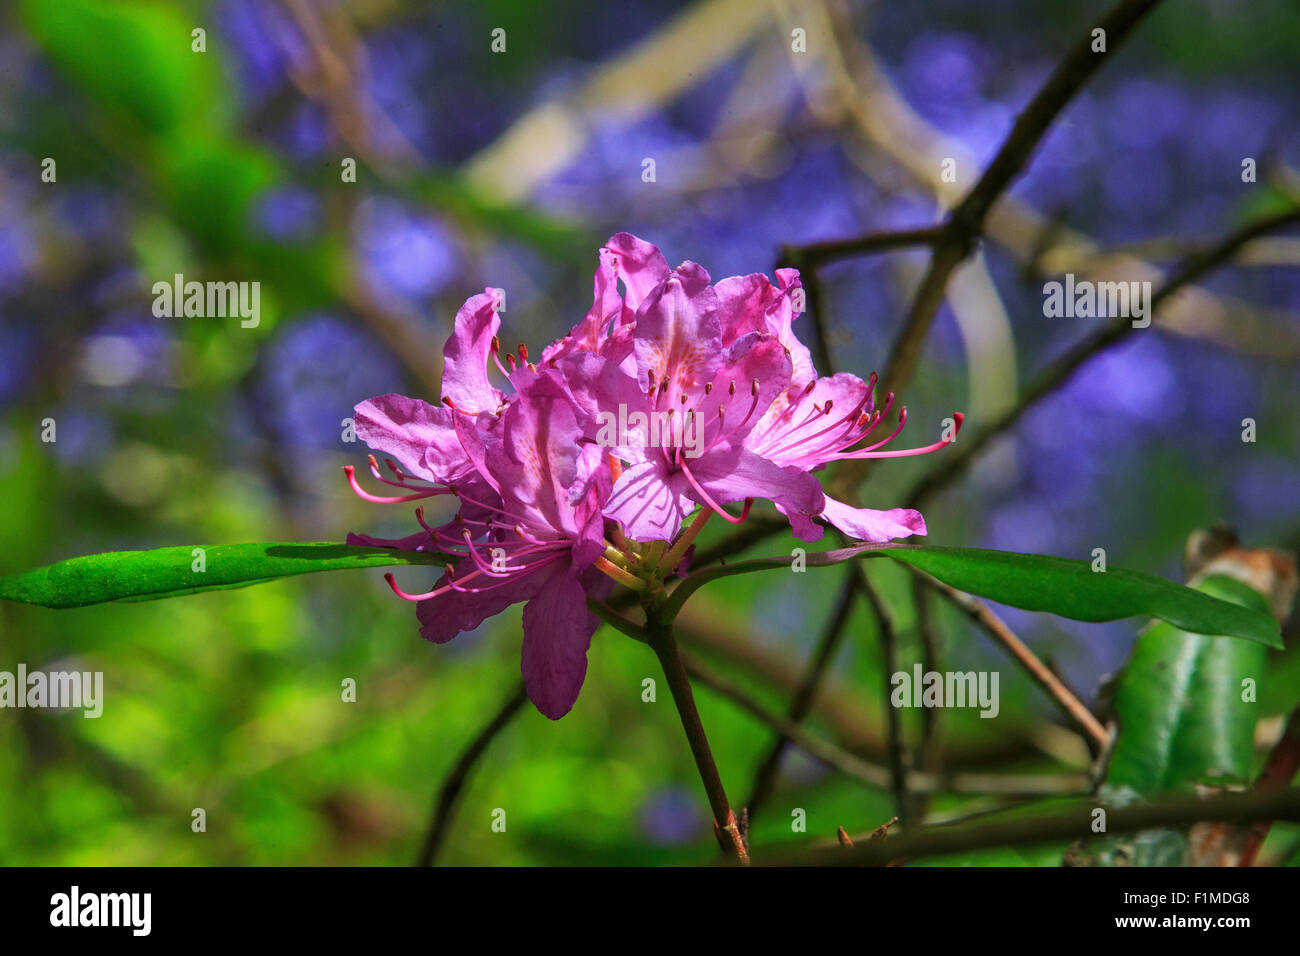 Rhododendron catawbiense - Stock Image